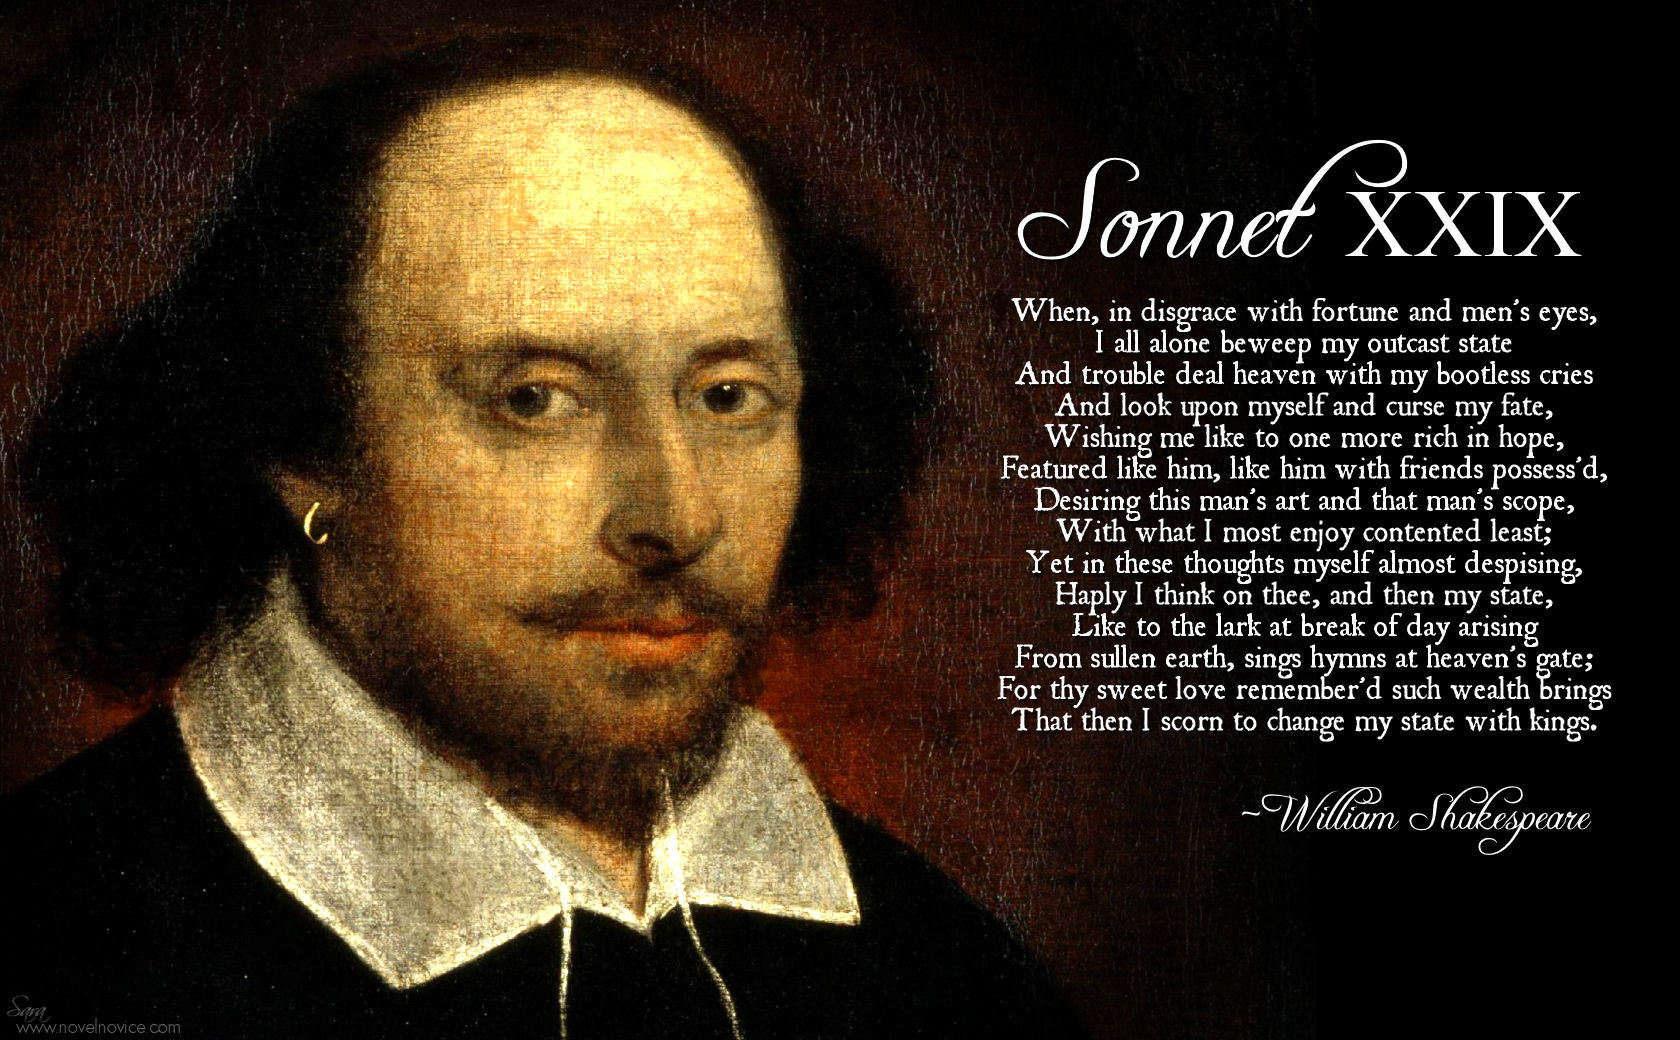 Best 51 Shakespearean Wallpaper on HipWallpaper Shakespearean 1680x1040